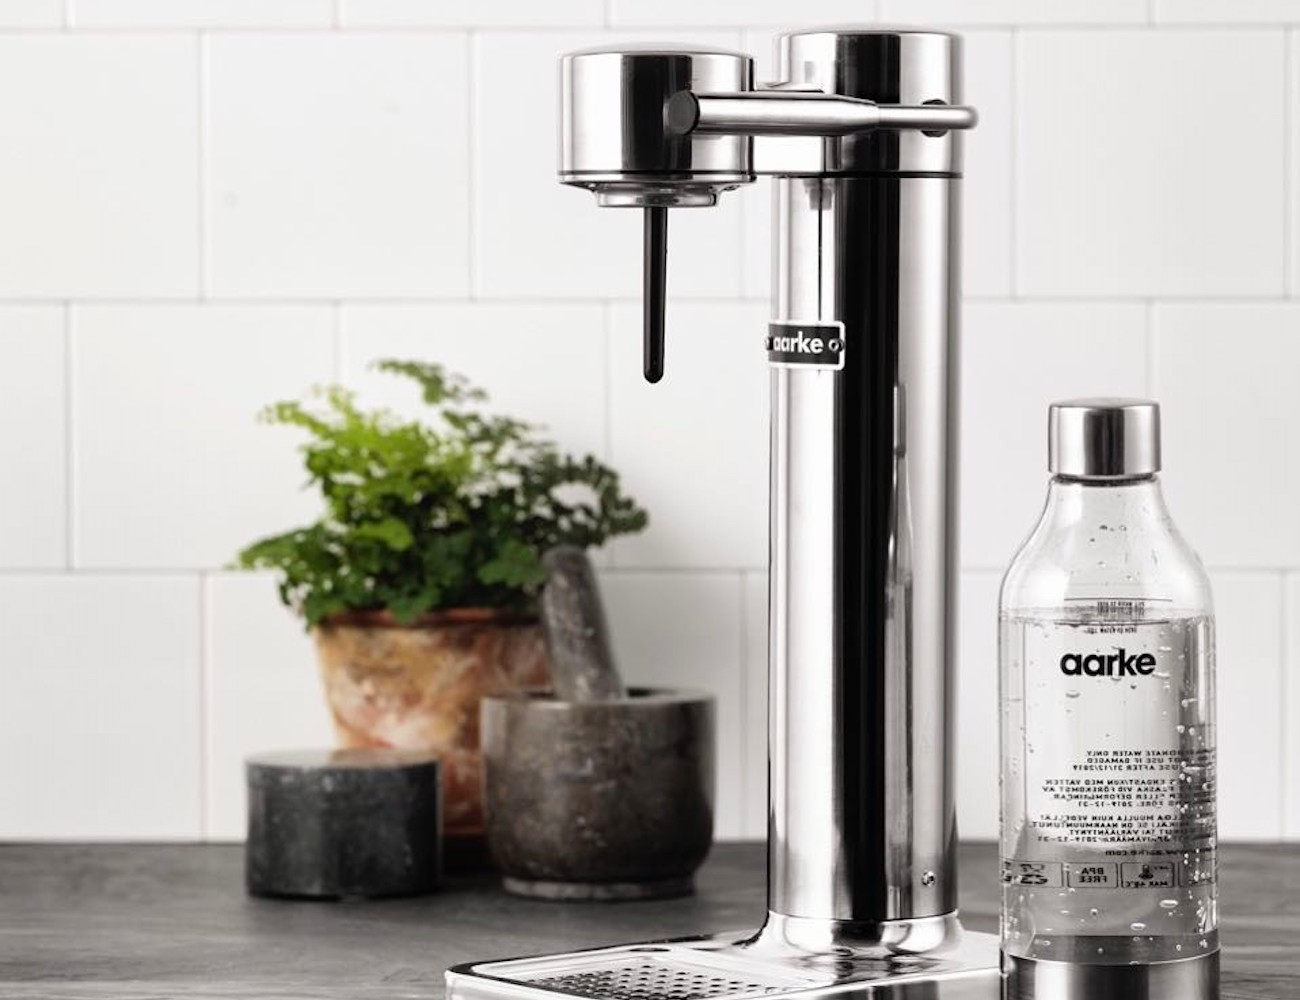 AARKE Premium Carbonated Drink Maker